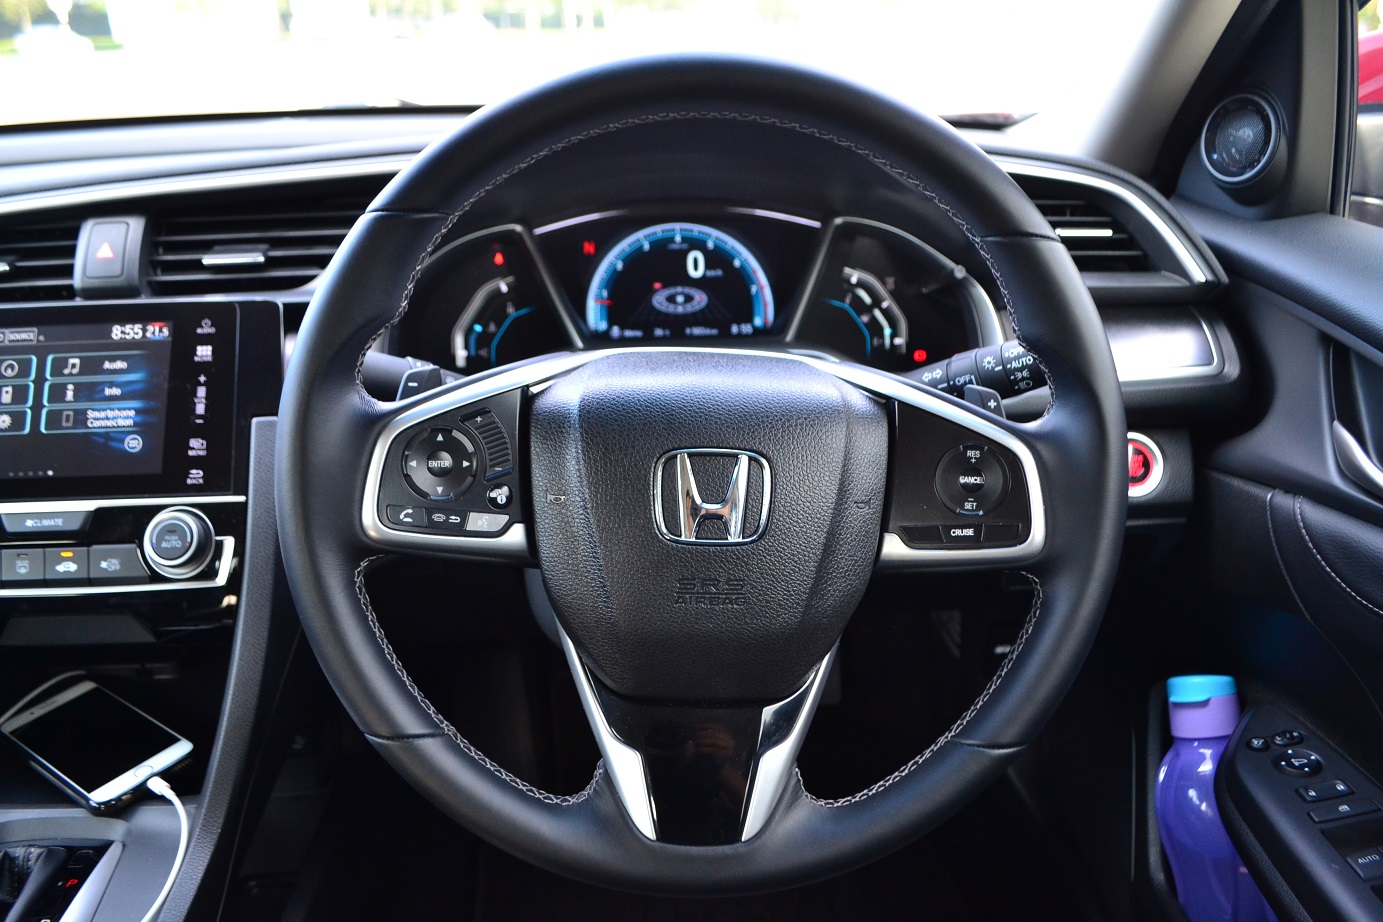 The New Honda Civic Riding Dream Kensomuse Blinker Switch Missing Forum Has Always Been Known To Feature A Futuristic Cabin And Motif Is Carried Over In 10th Gen Build Quality Excellent As It With